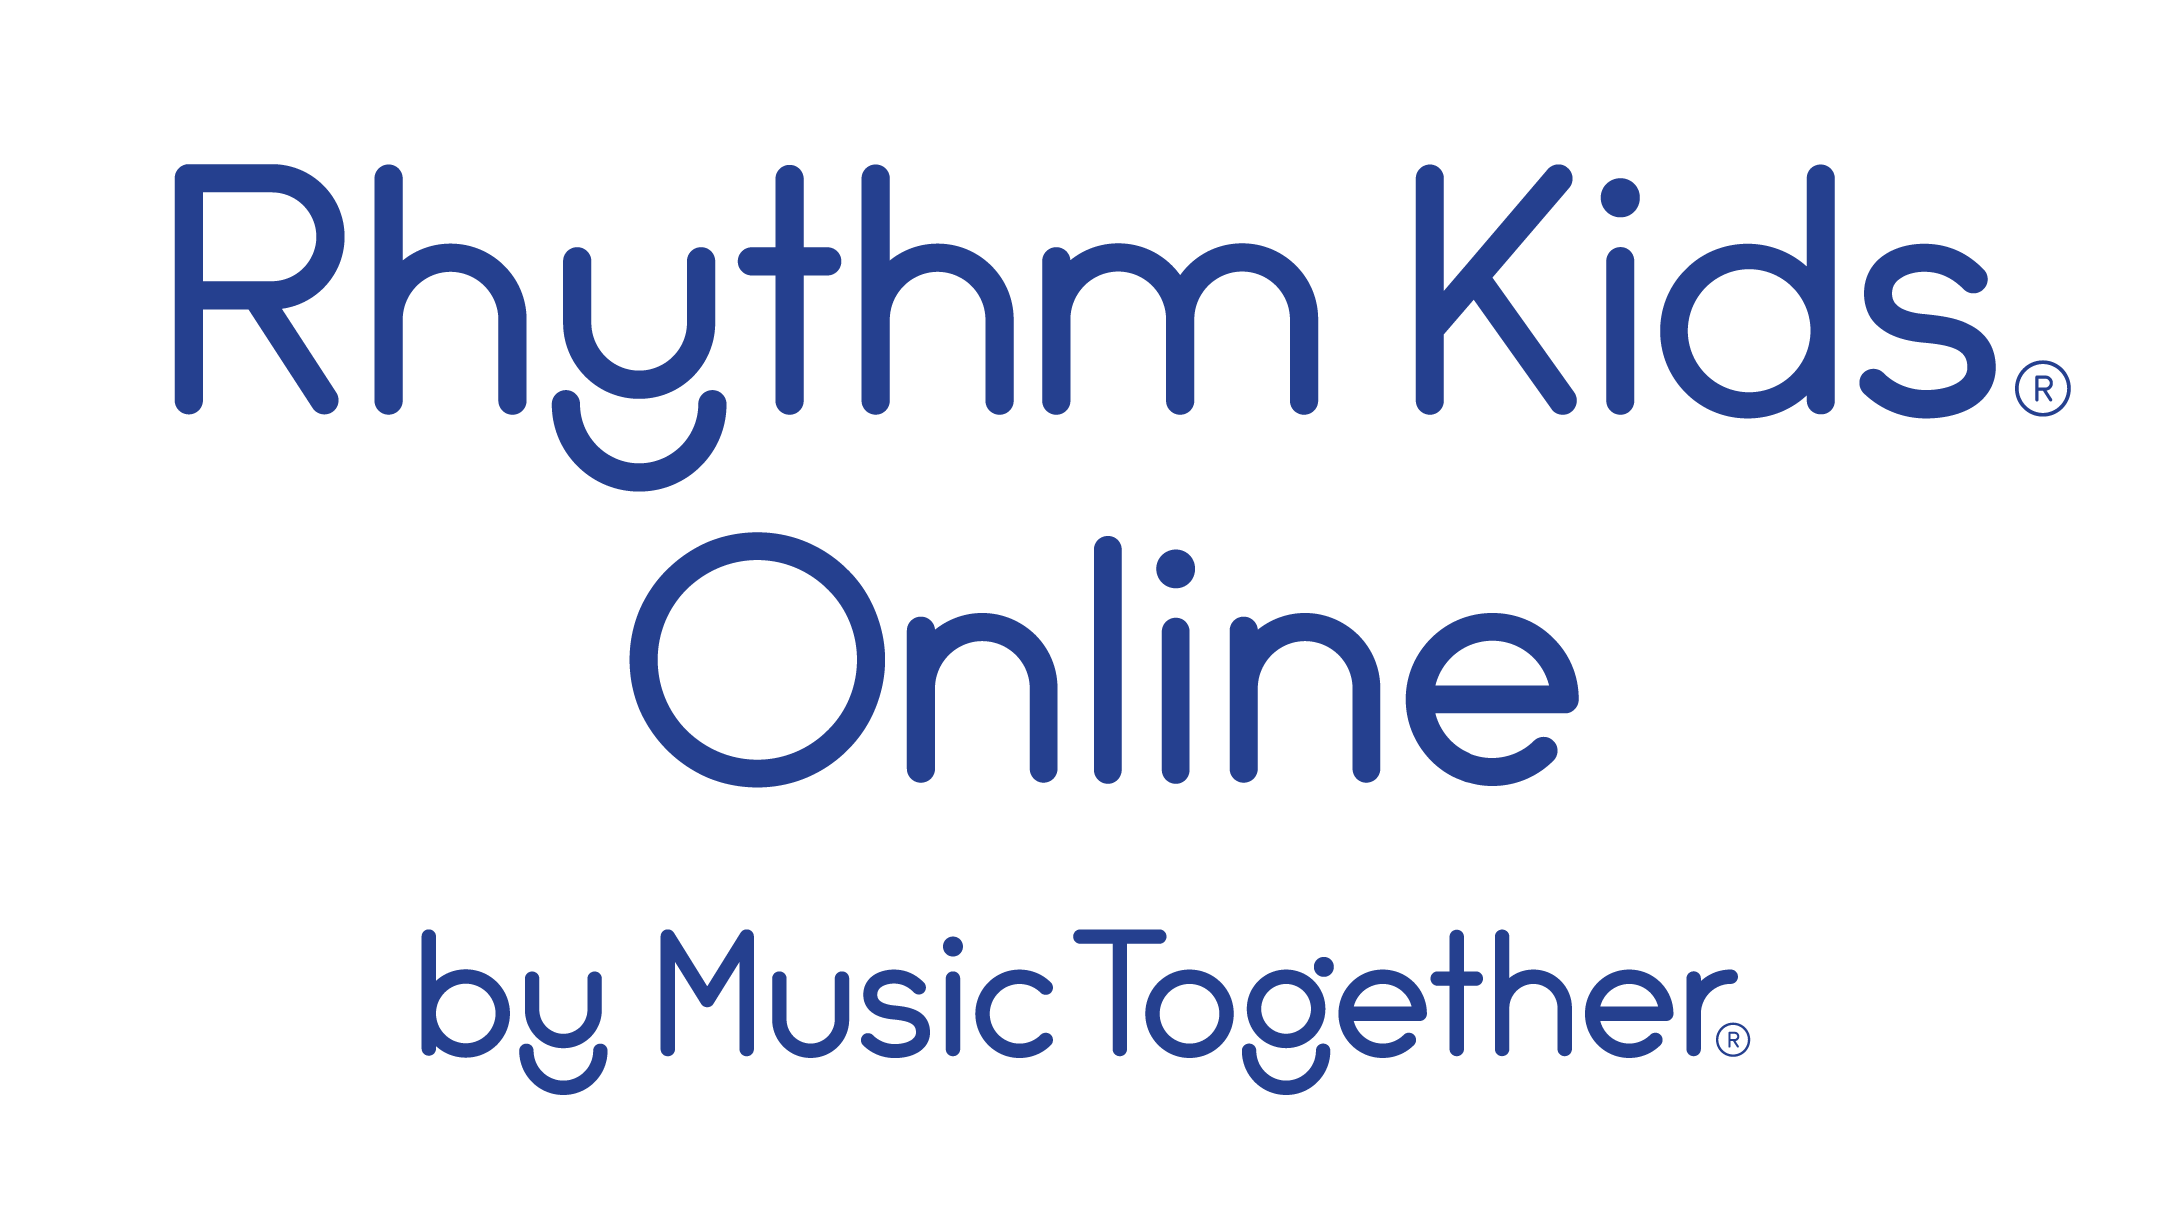 Music Together Rhythm Kids Online